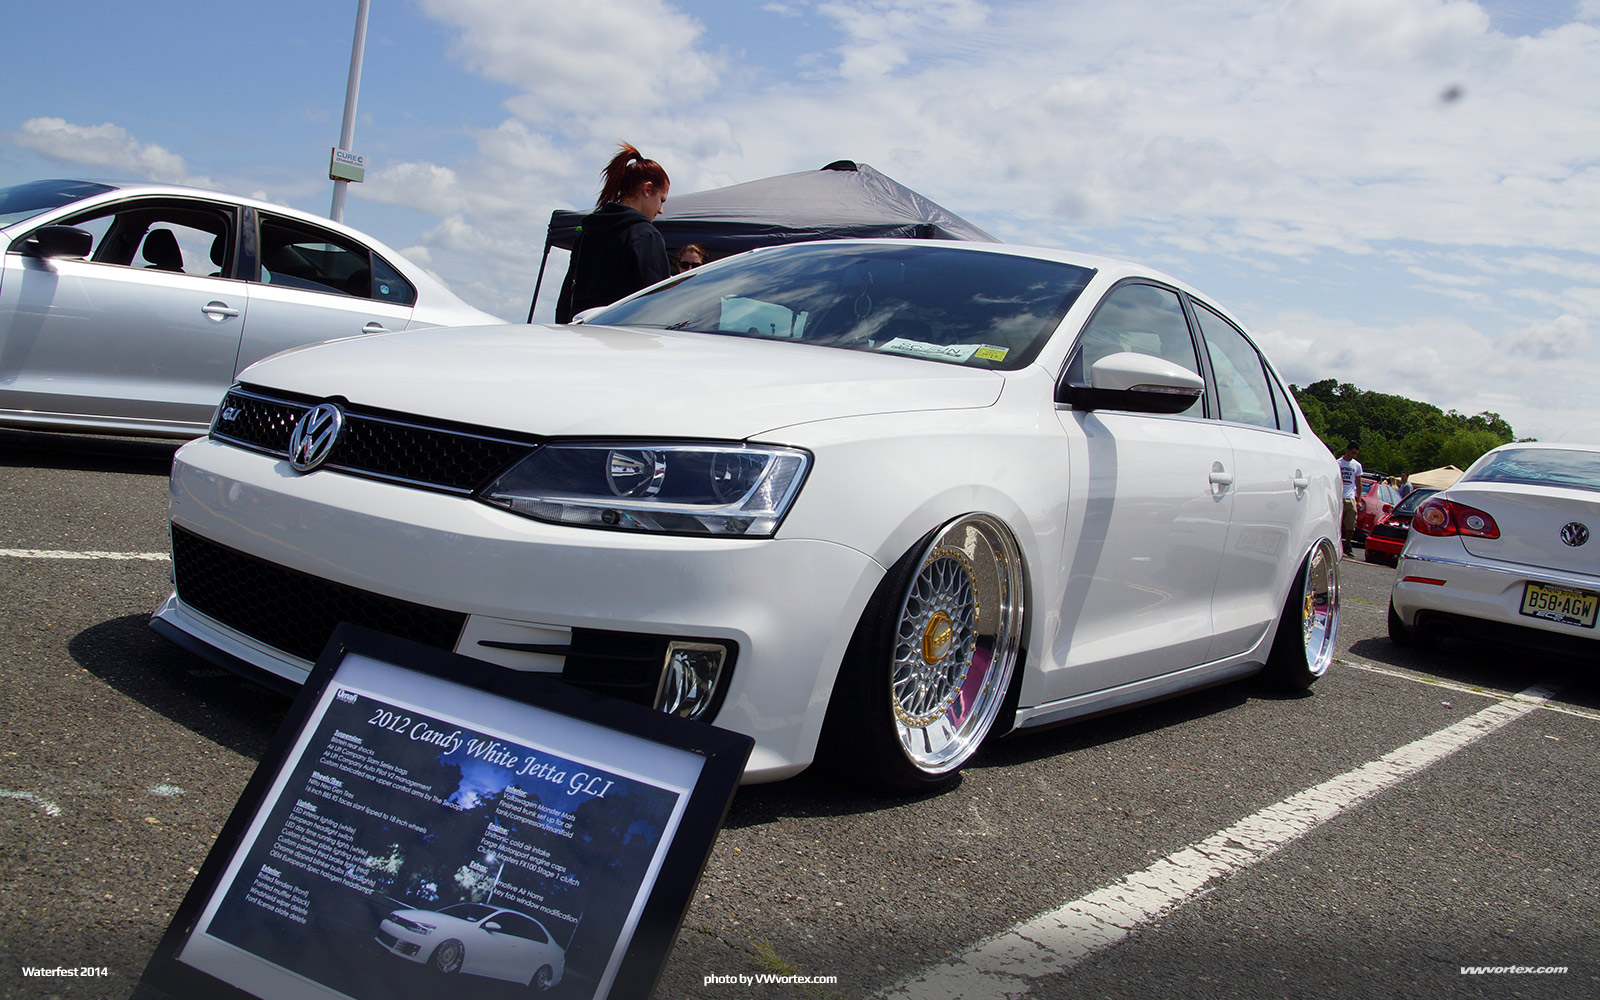 2014-waterfest-vw-audi-1558